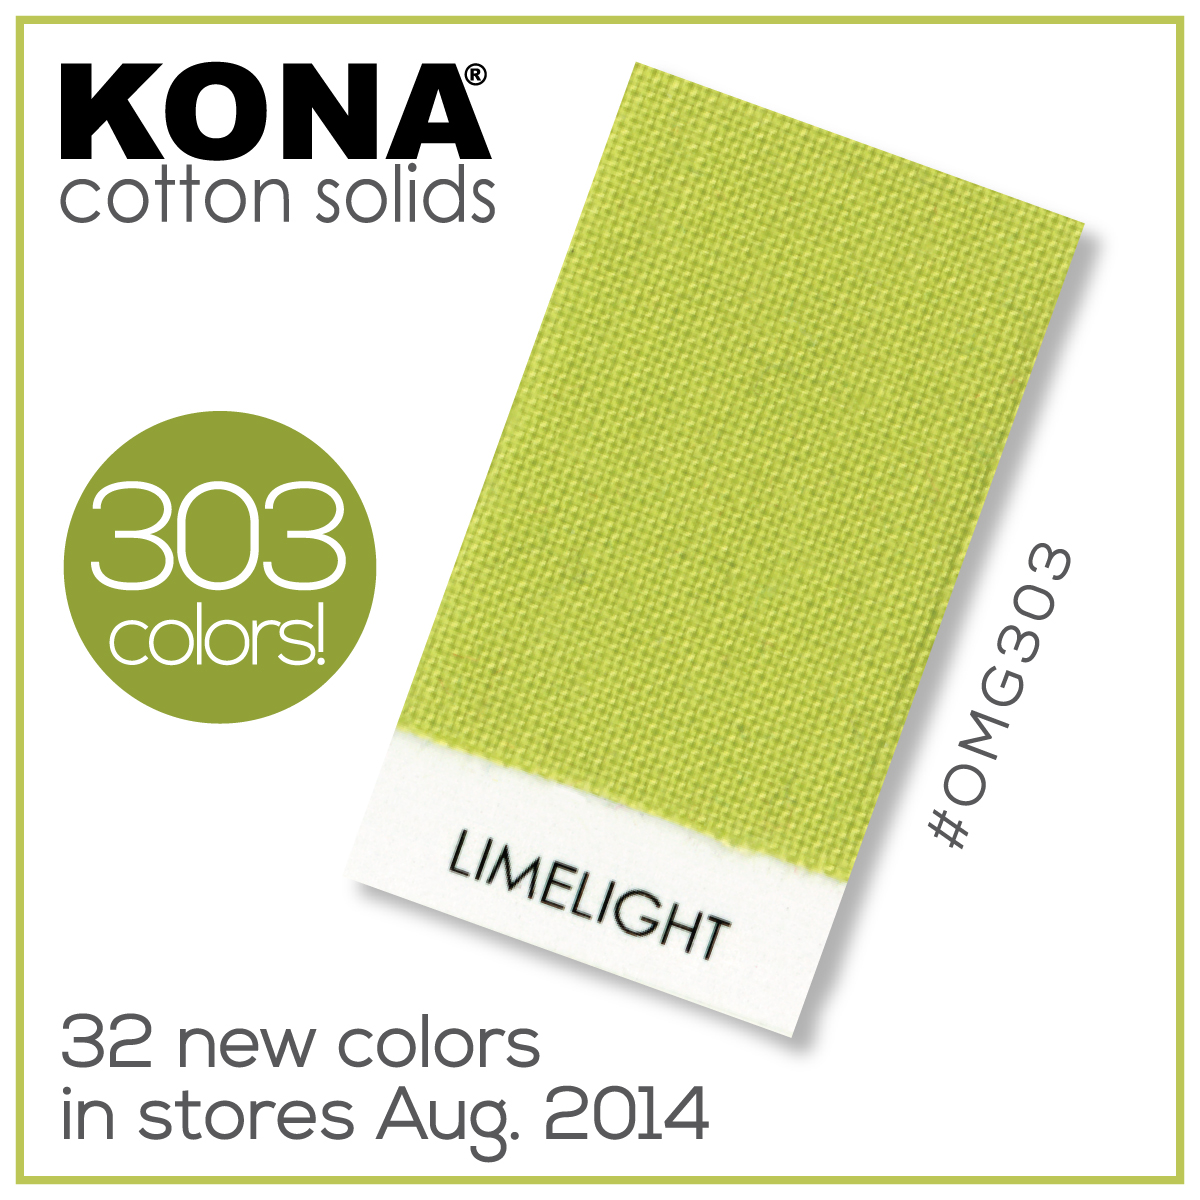 POSTED - Kona-Limelight.jpg